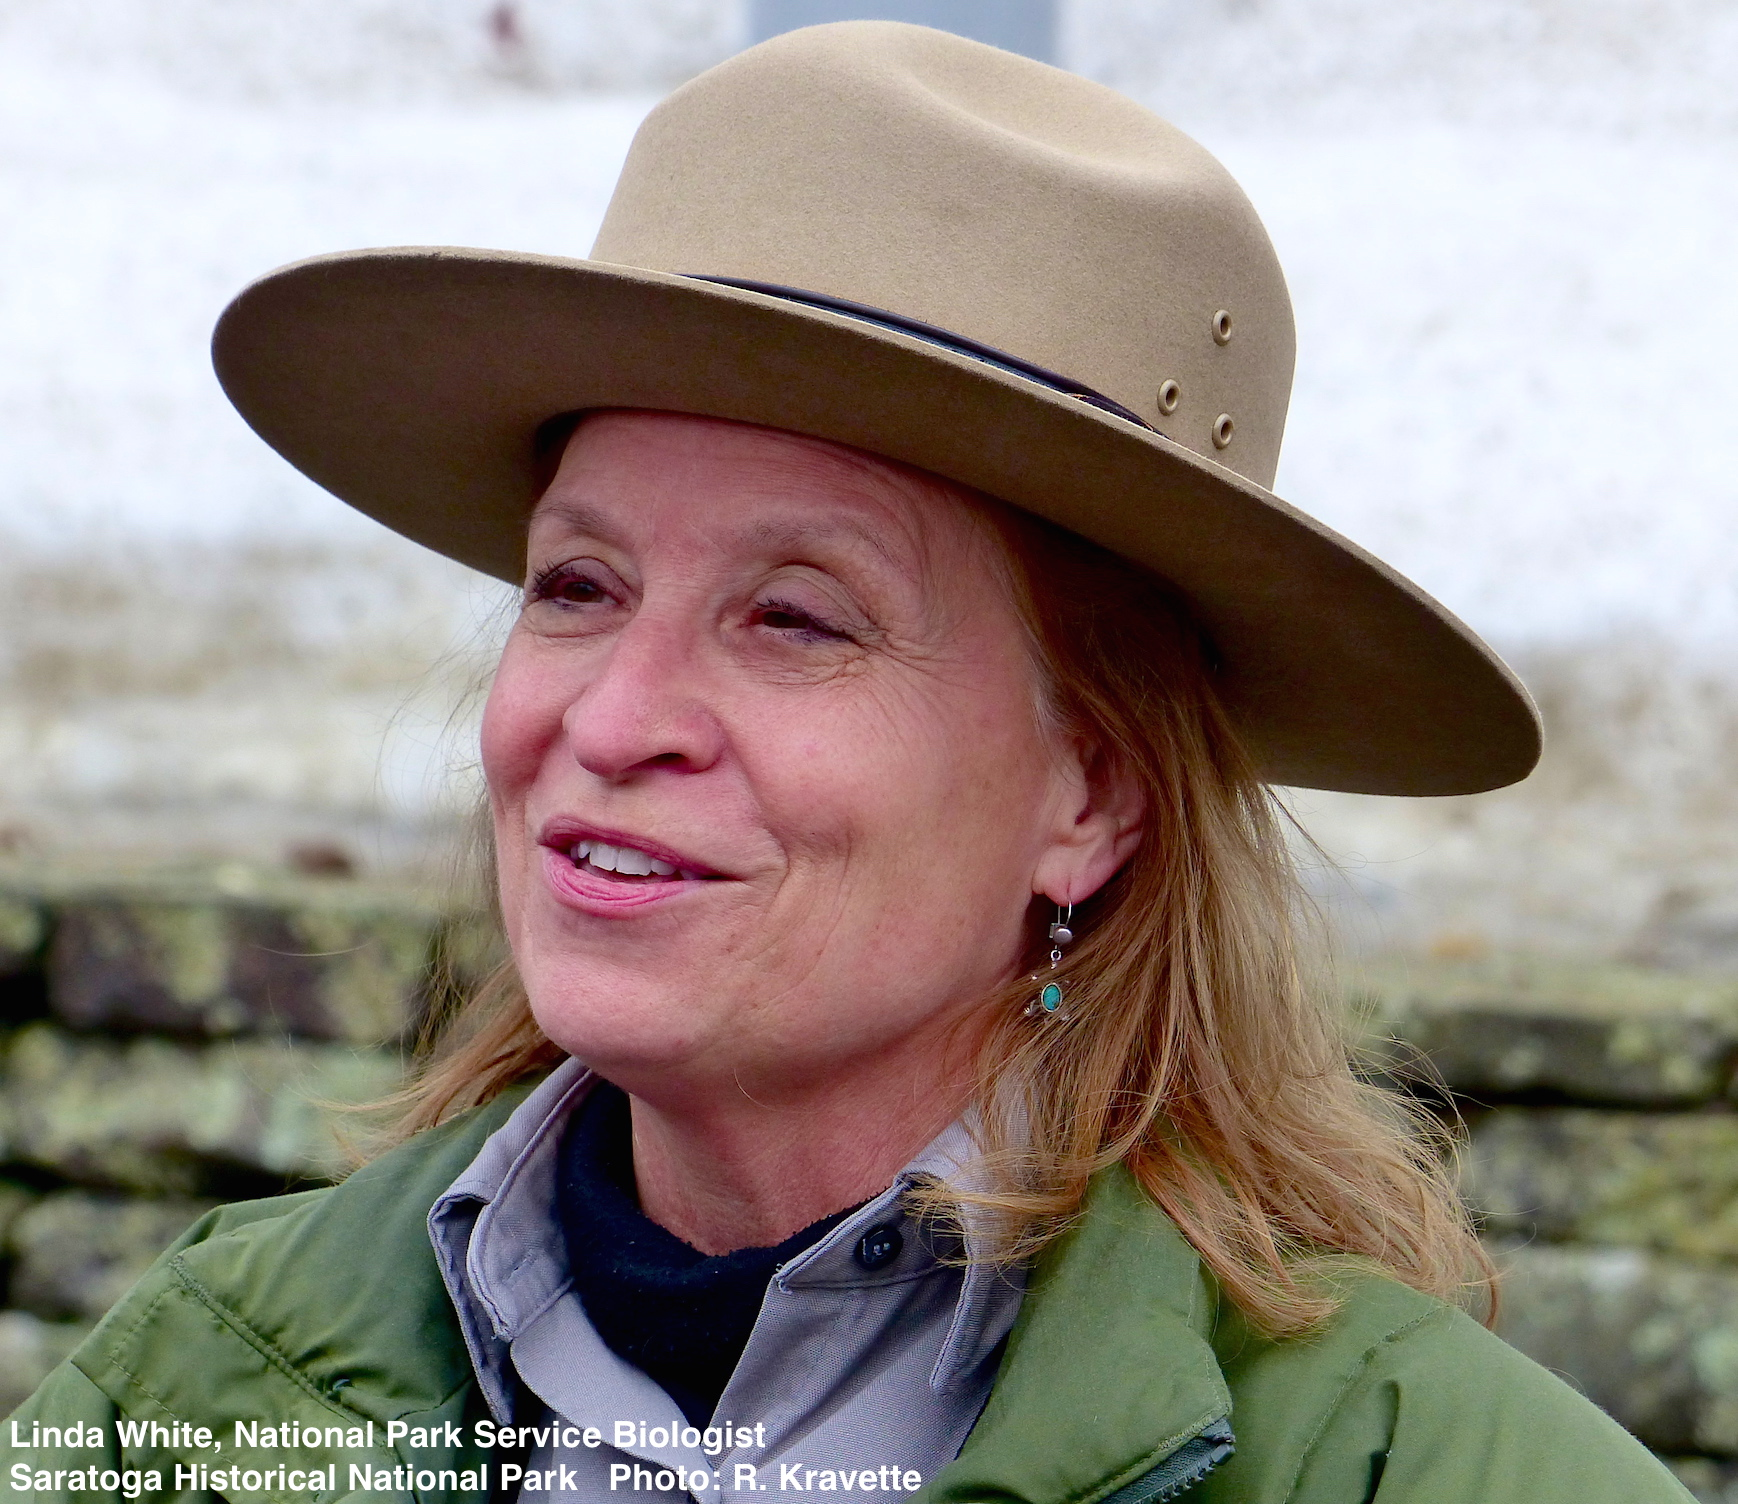 SHNP's Biologist Linda White never missed a beat POINTing OUT EVIDENCE (SCAT) OF SMALL MAMMALS & BIRDS and explaining the park's flora. all the while interspersing her narrative with fascinating stories of the area's revolutionary War role.